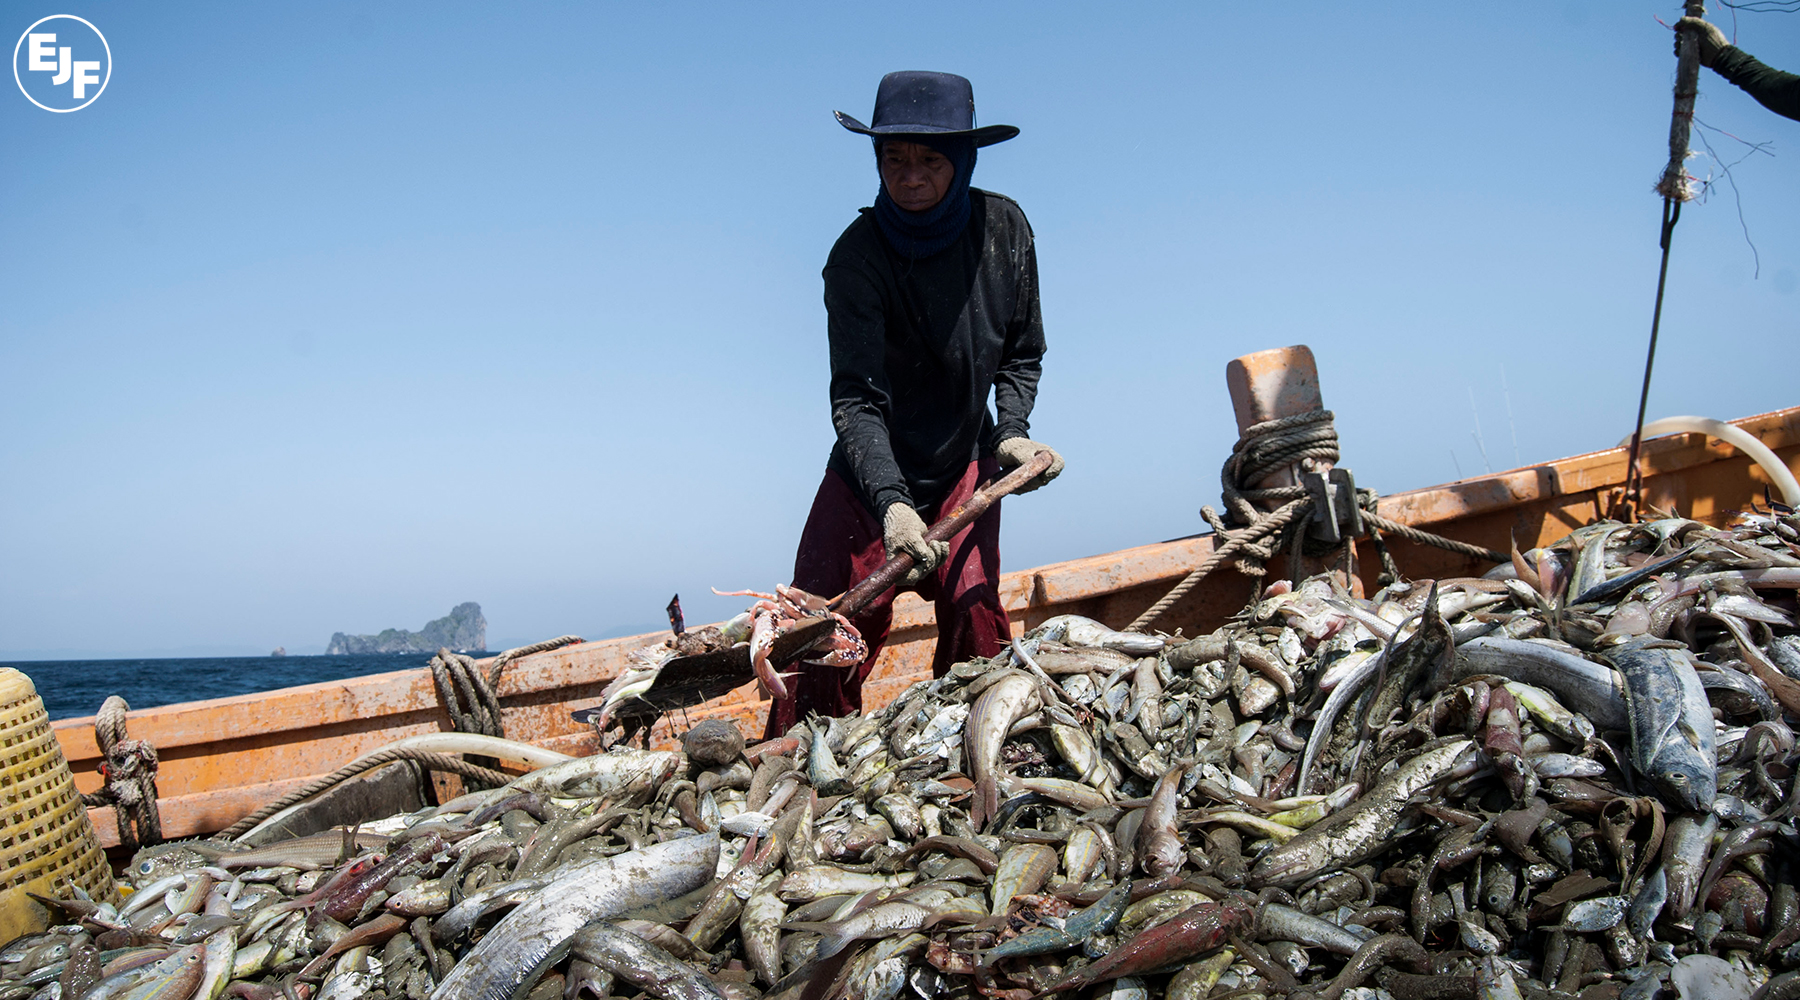 Overfishing and pirate fishing perpetuate environmental degradation and modern-day slavery in Thailand